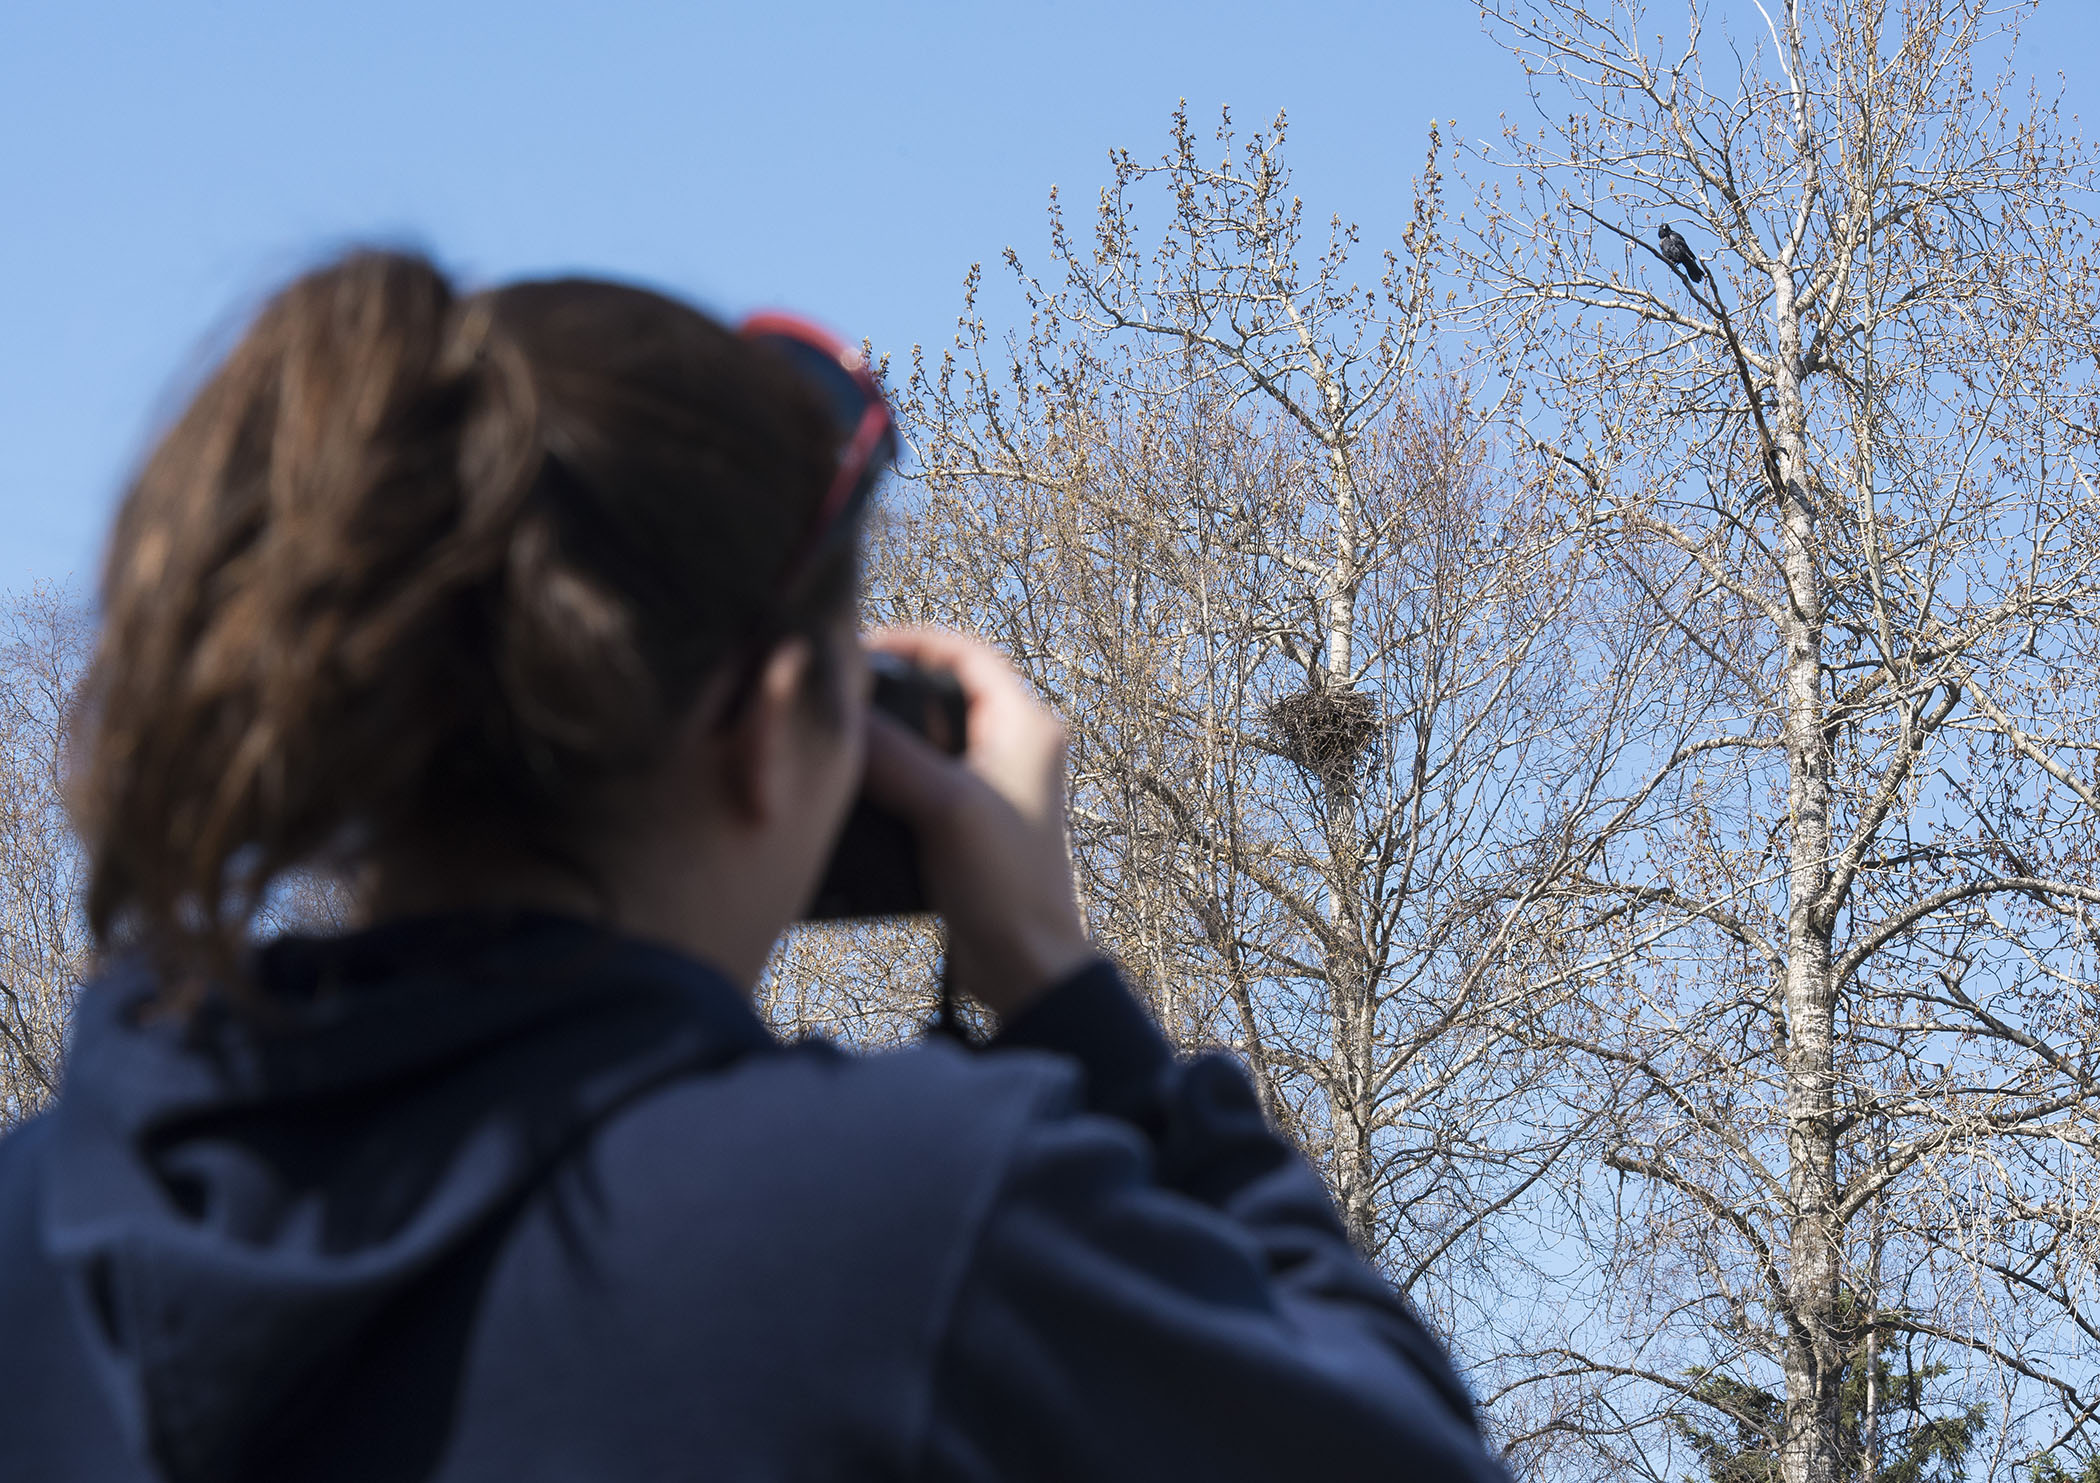 AERC partners monitor an active raven nest